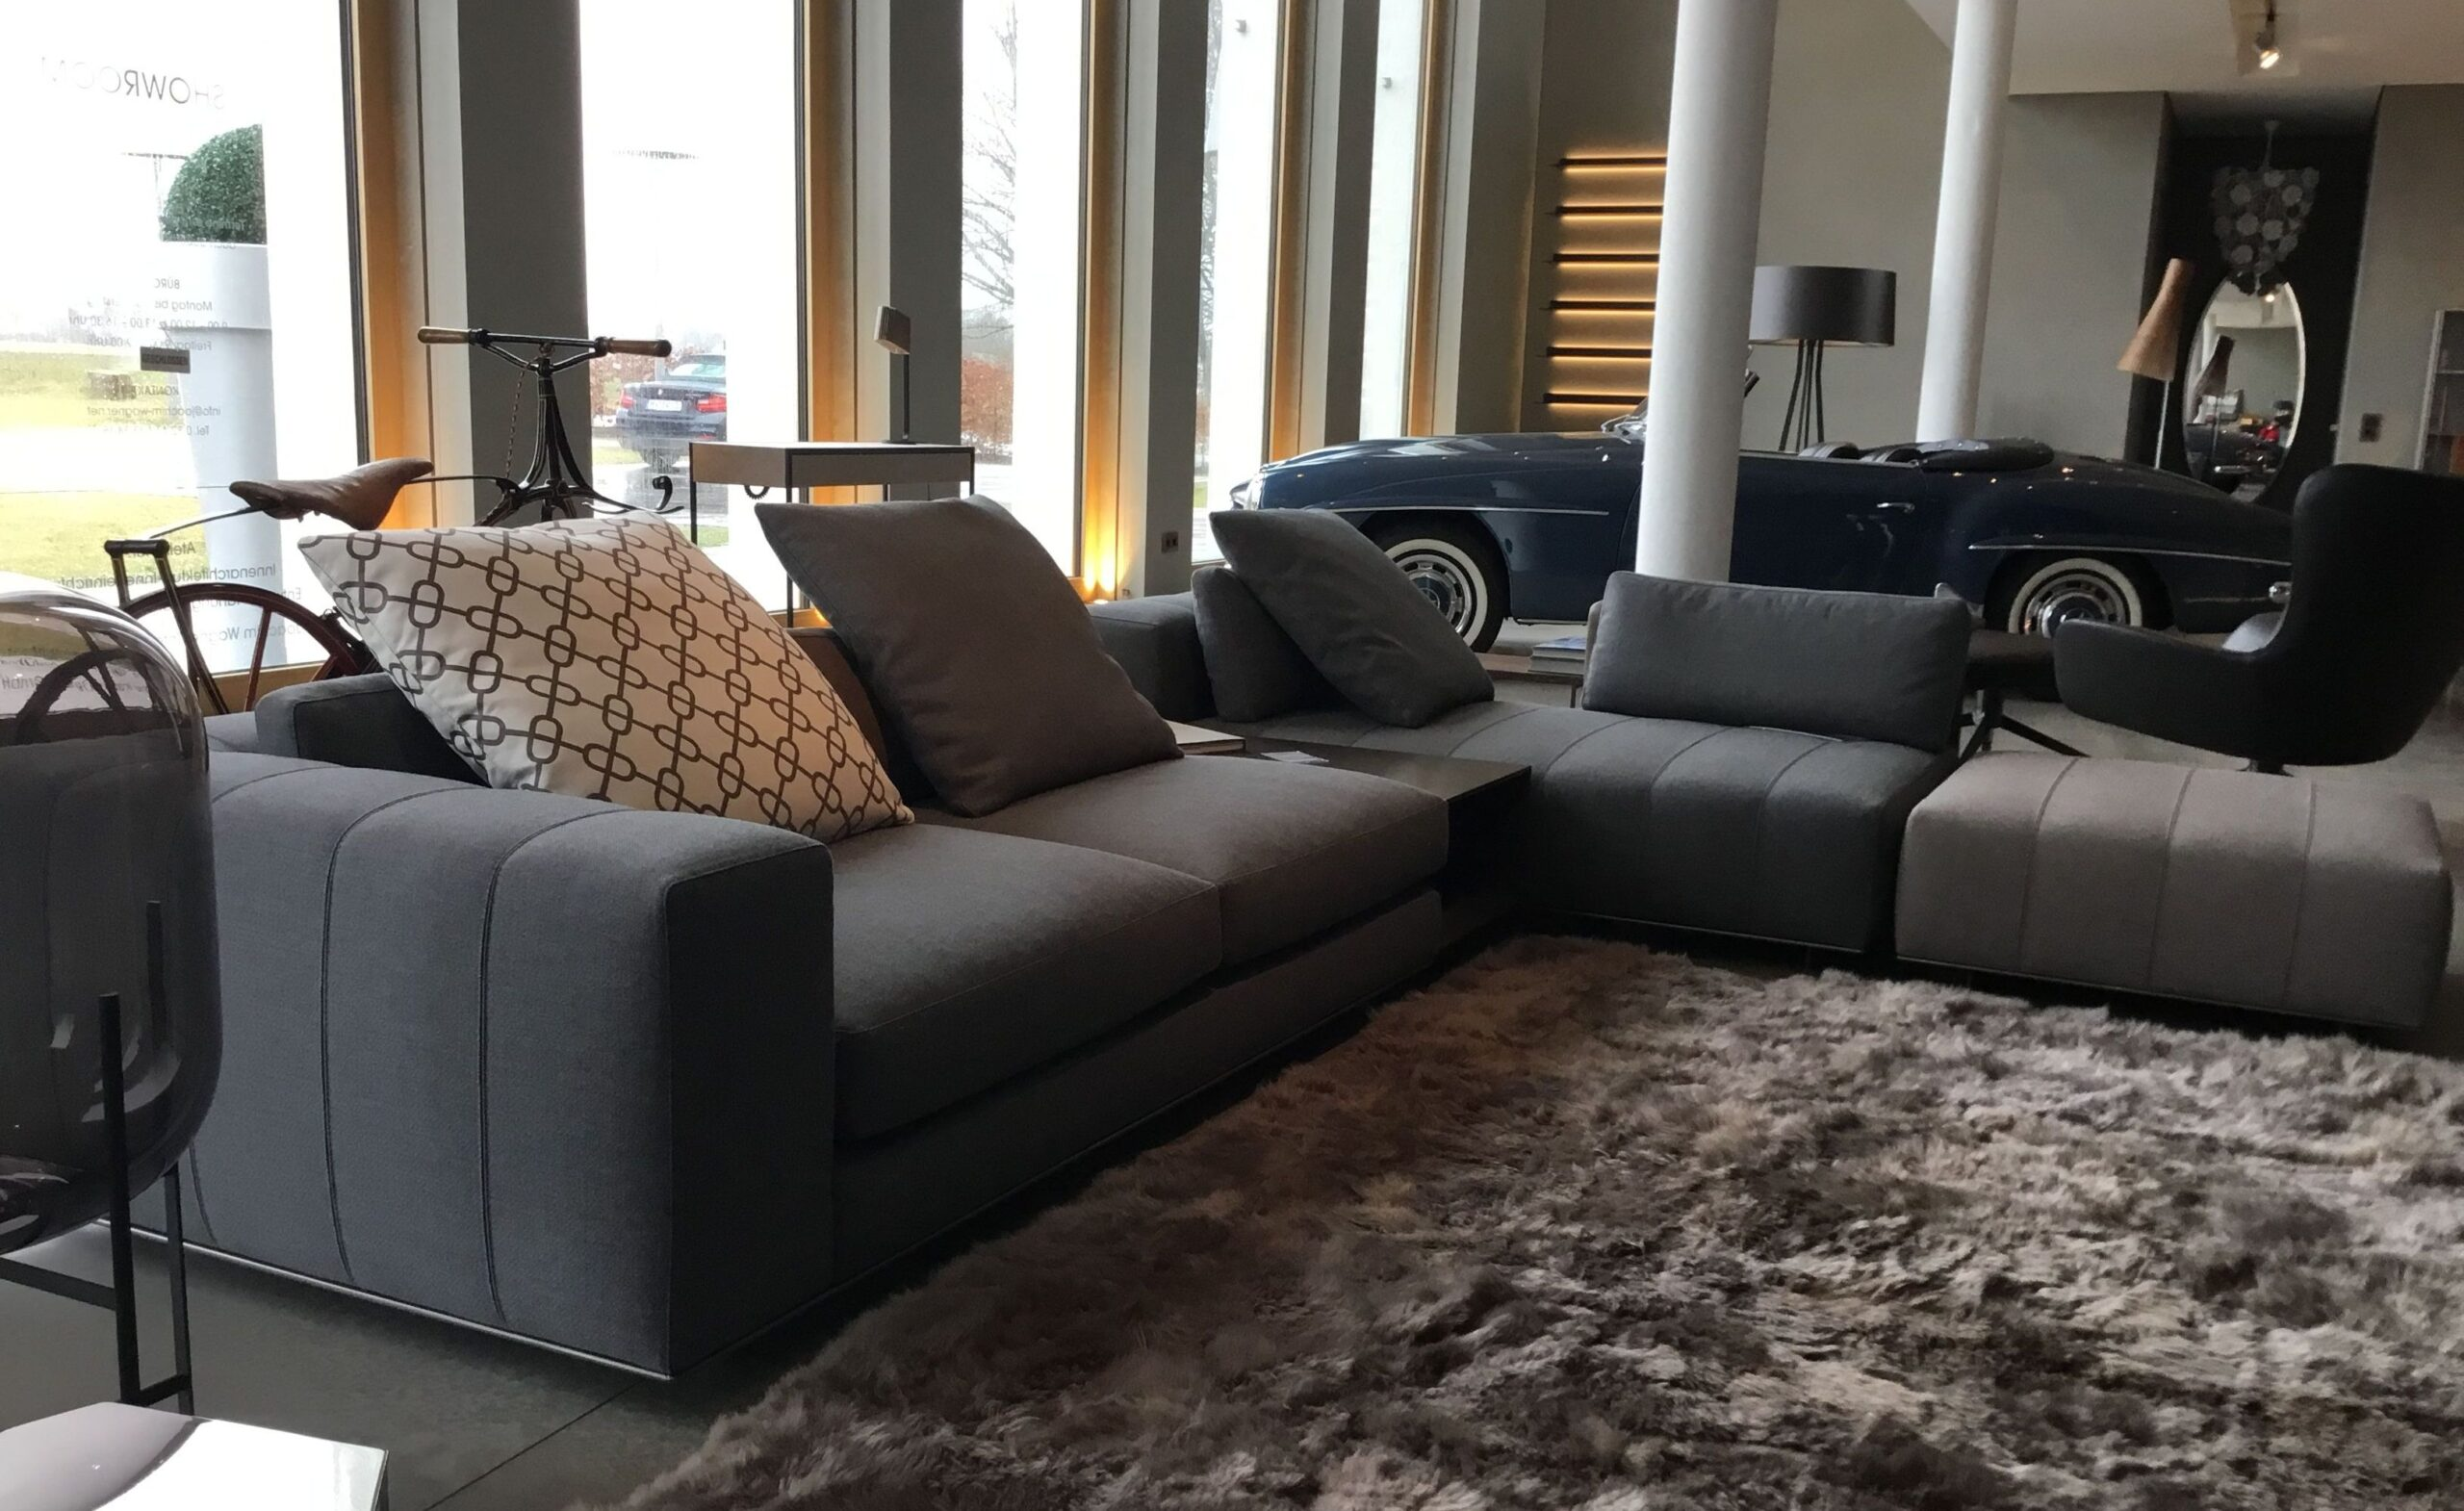 Full Size of Minotti Sofa Alexander Sleeper Cad Block Freeman Outlet Duvet India Dimensions Cost Size Sales Joachim Wagner Interior Design Türkische Ewald Schillig Rotes Sofa Minotti Sofa